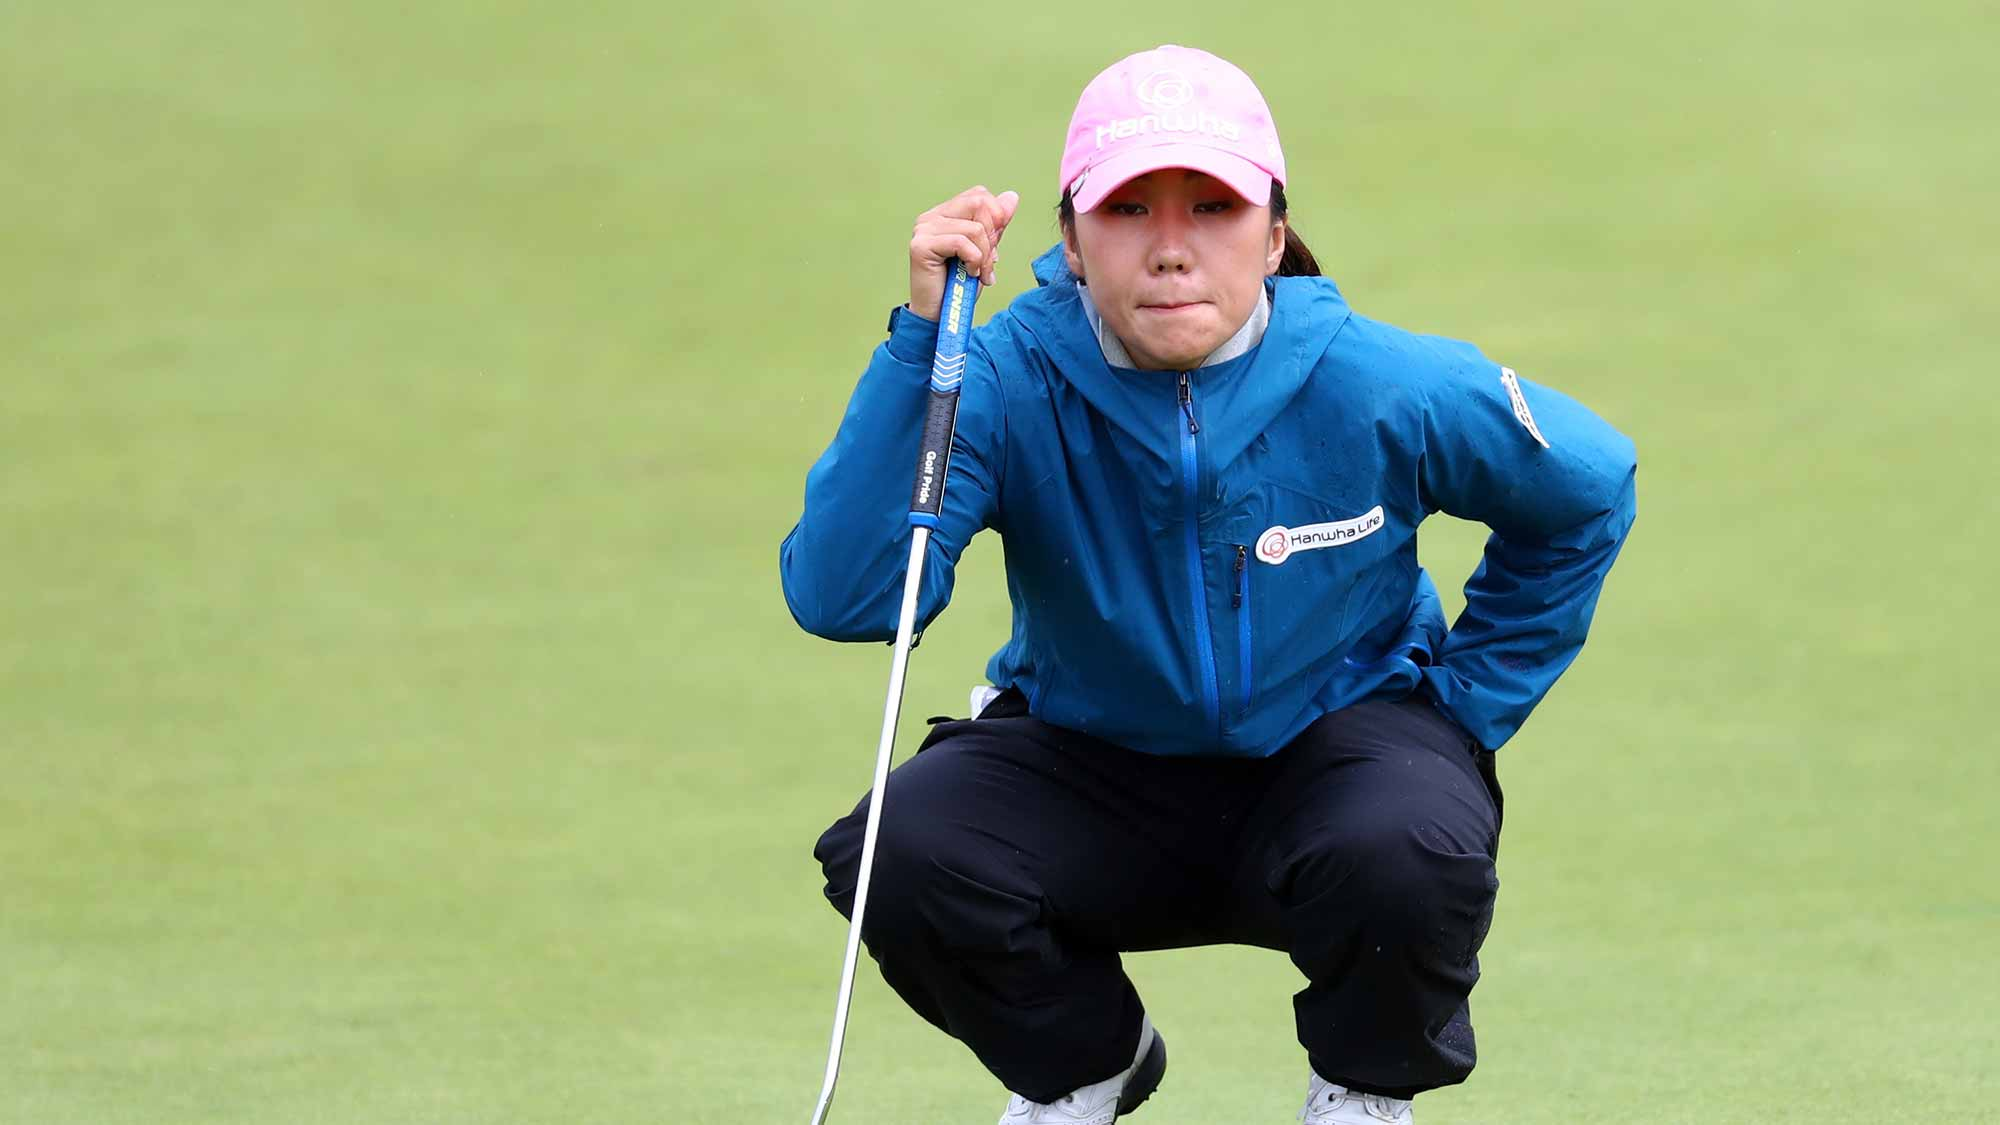 In-Kyung Kim of Korea lines up a putt on the 4th green during the third round of the Ricoh Women's British Open at Kingsbarns Golf Links